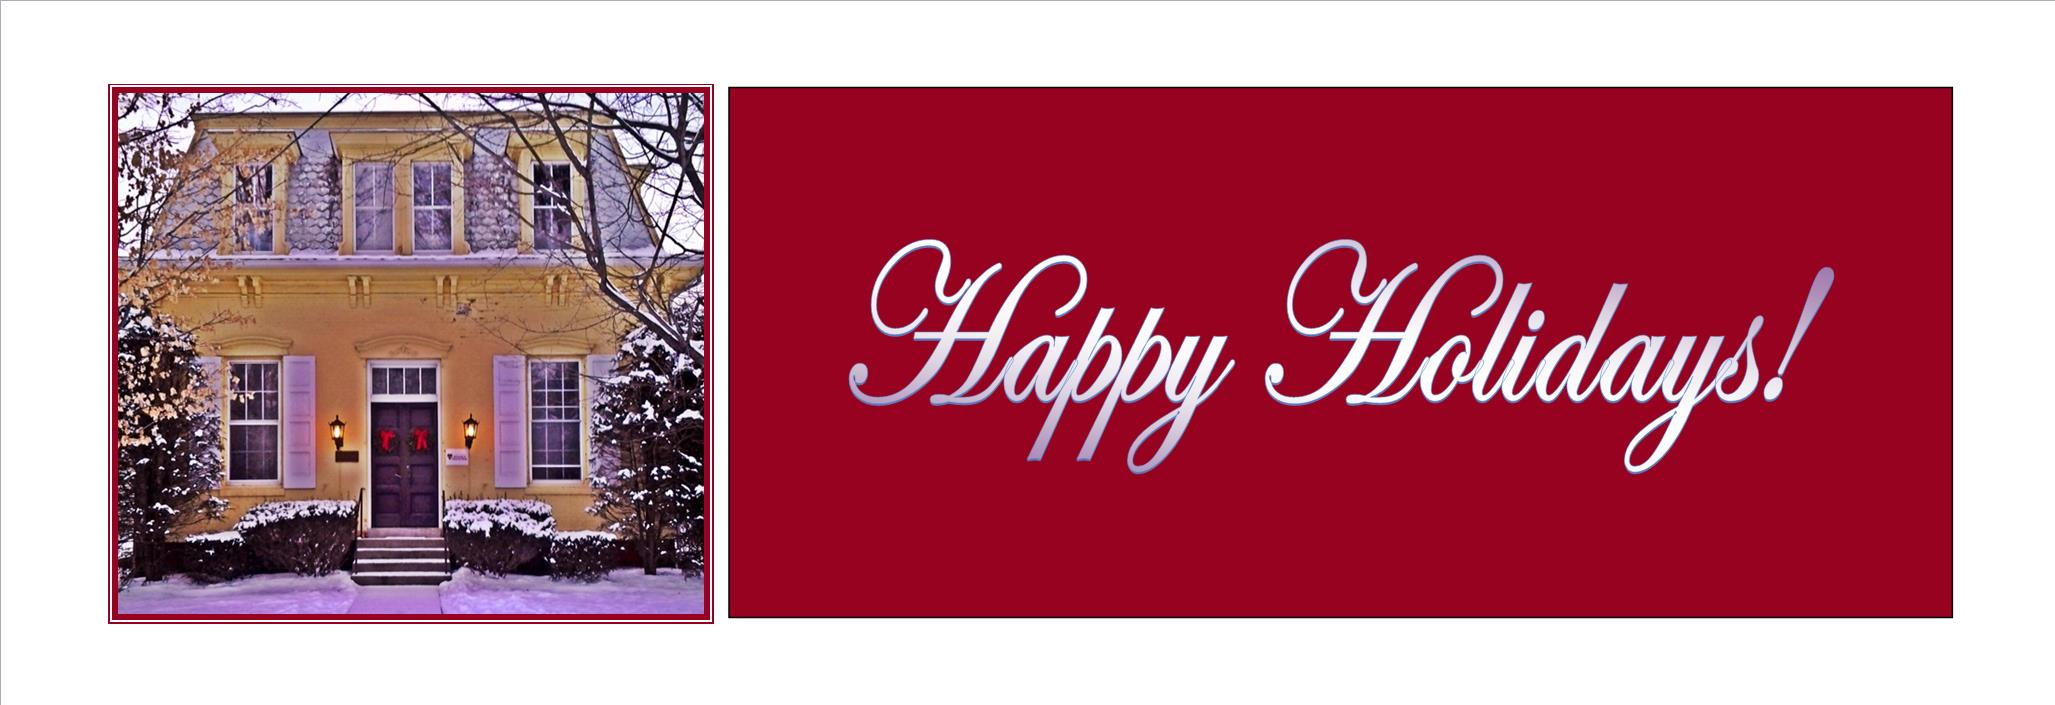 We wish you and yours a healthy holiday season!